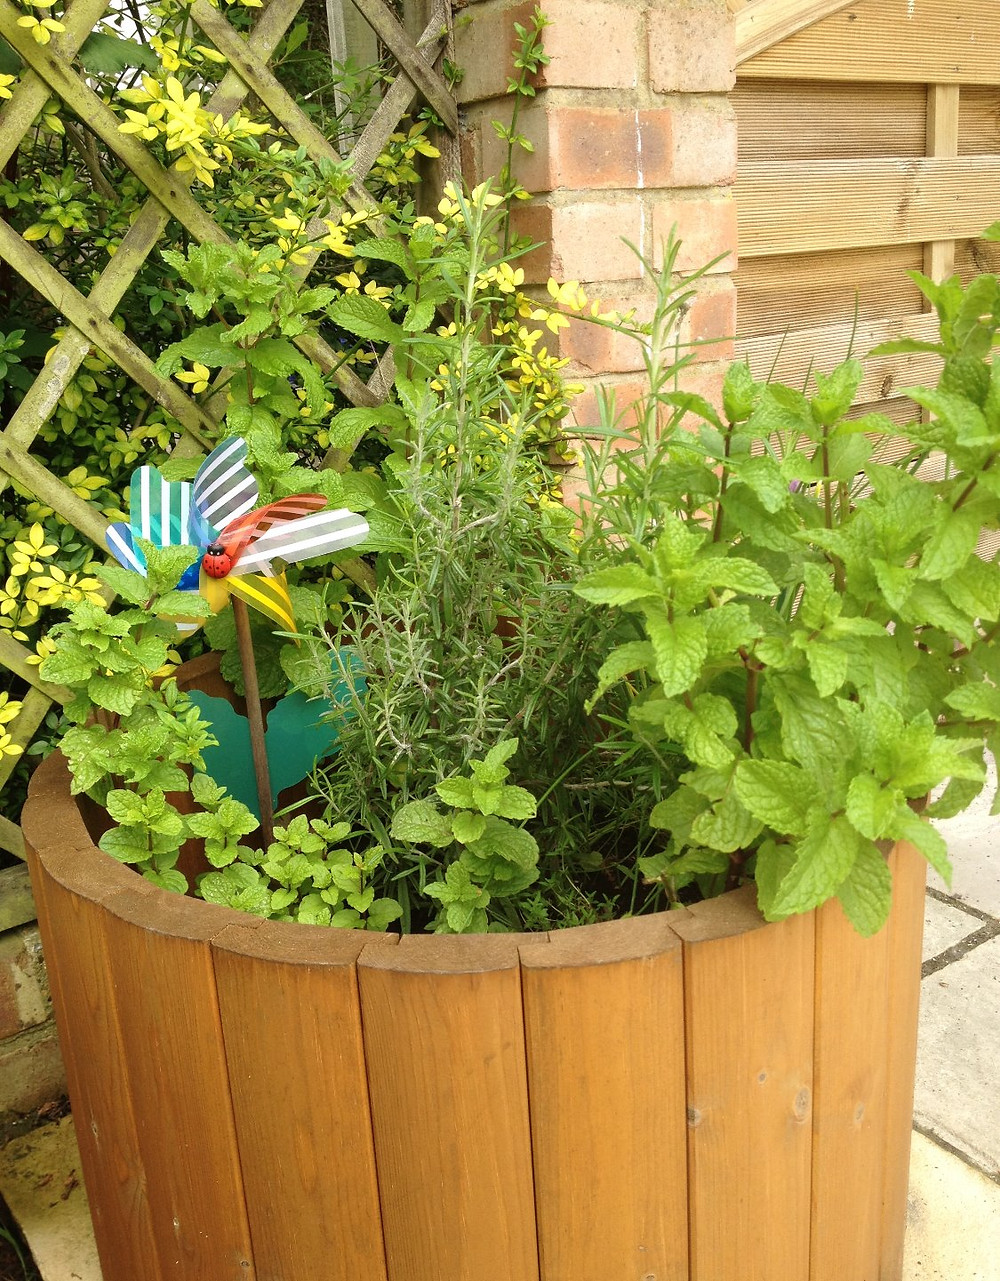 Herb Trough - Baby-Led Weaning for Busy Parents (BLW)